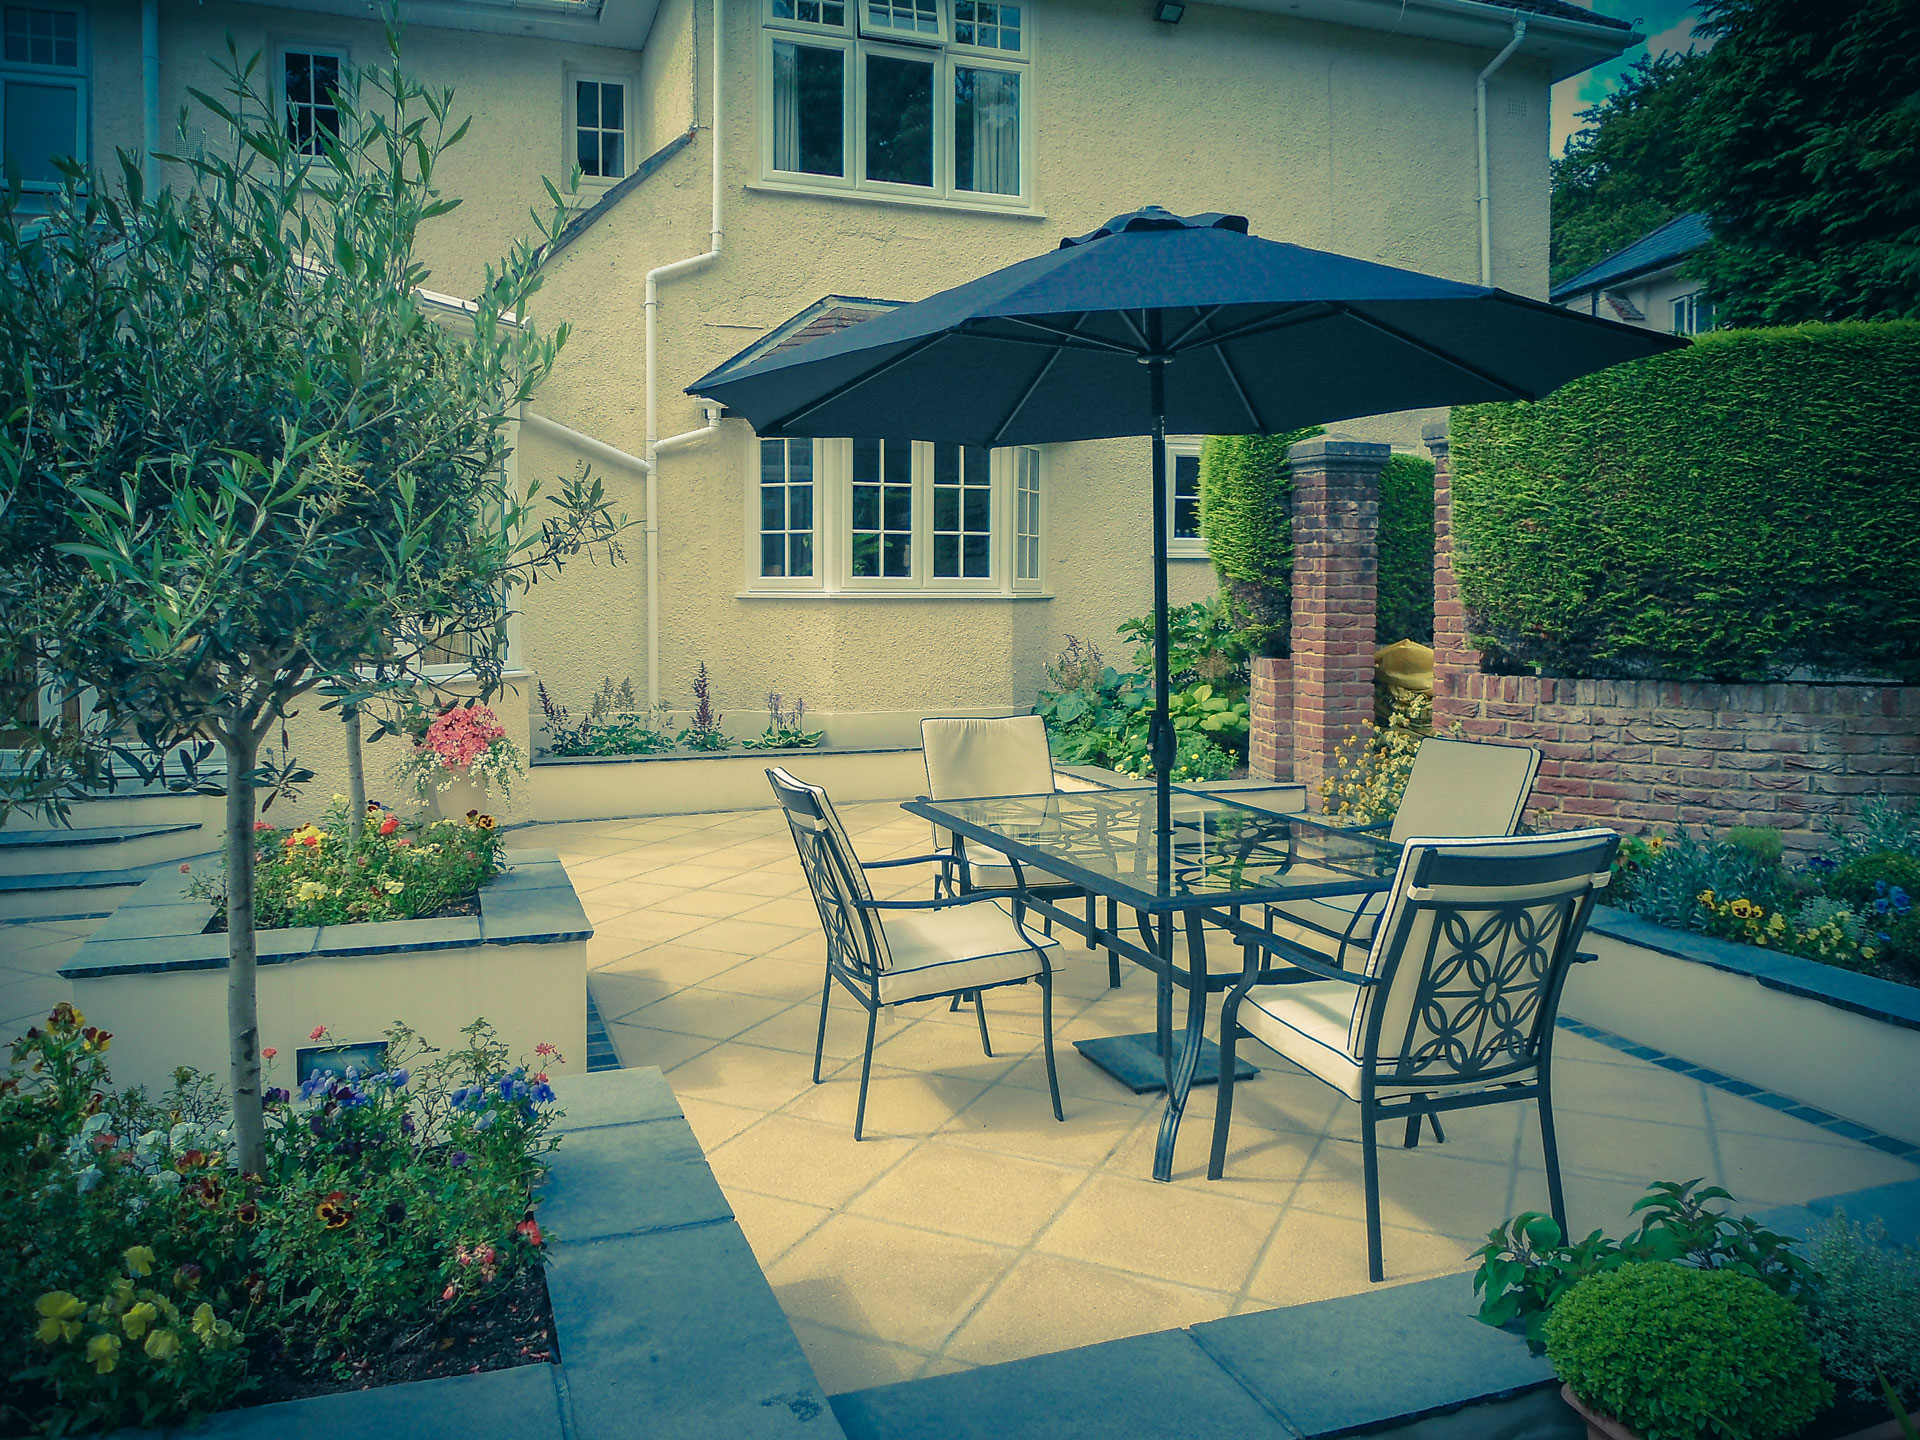 Image of Italian Garden with Outside Dining Area